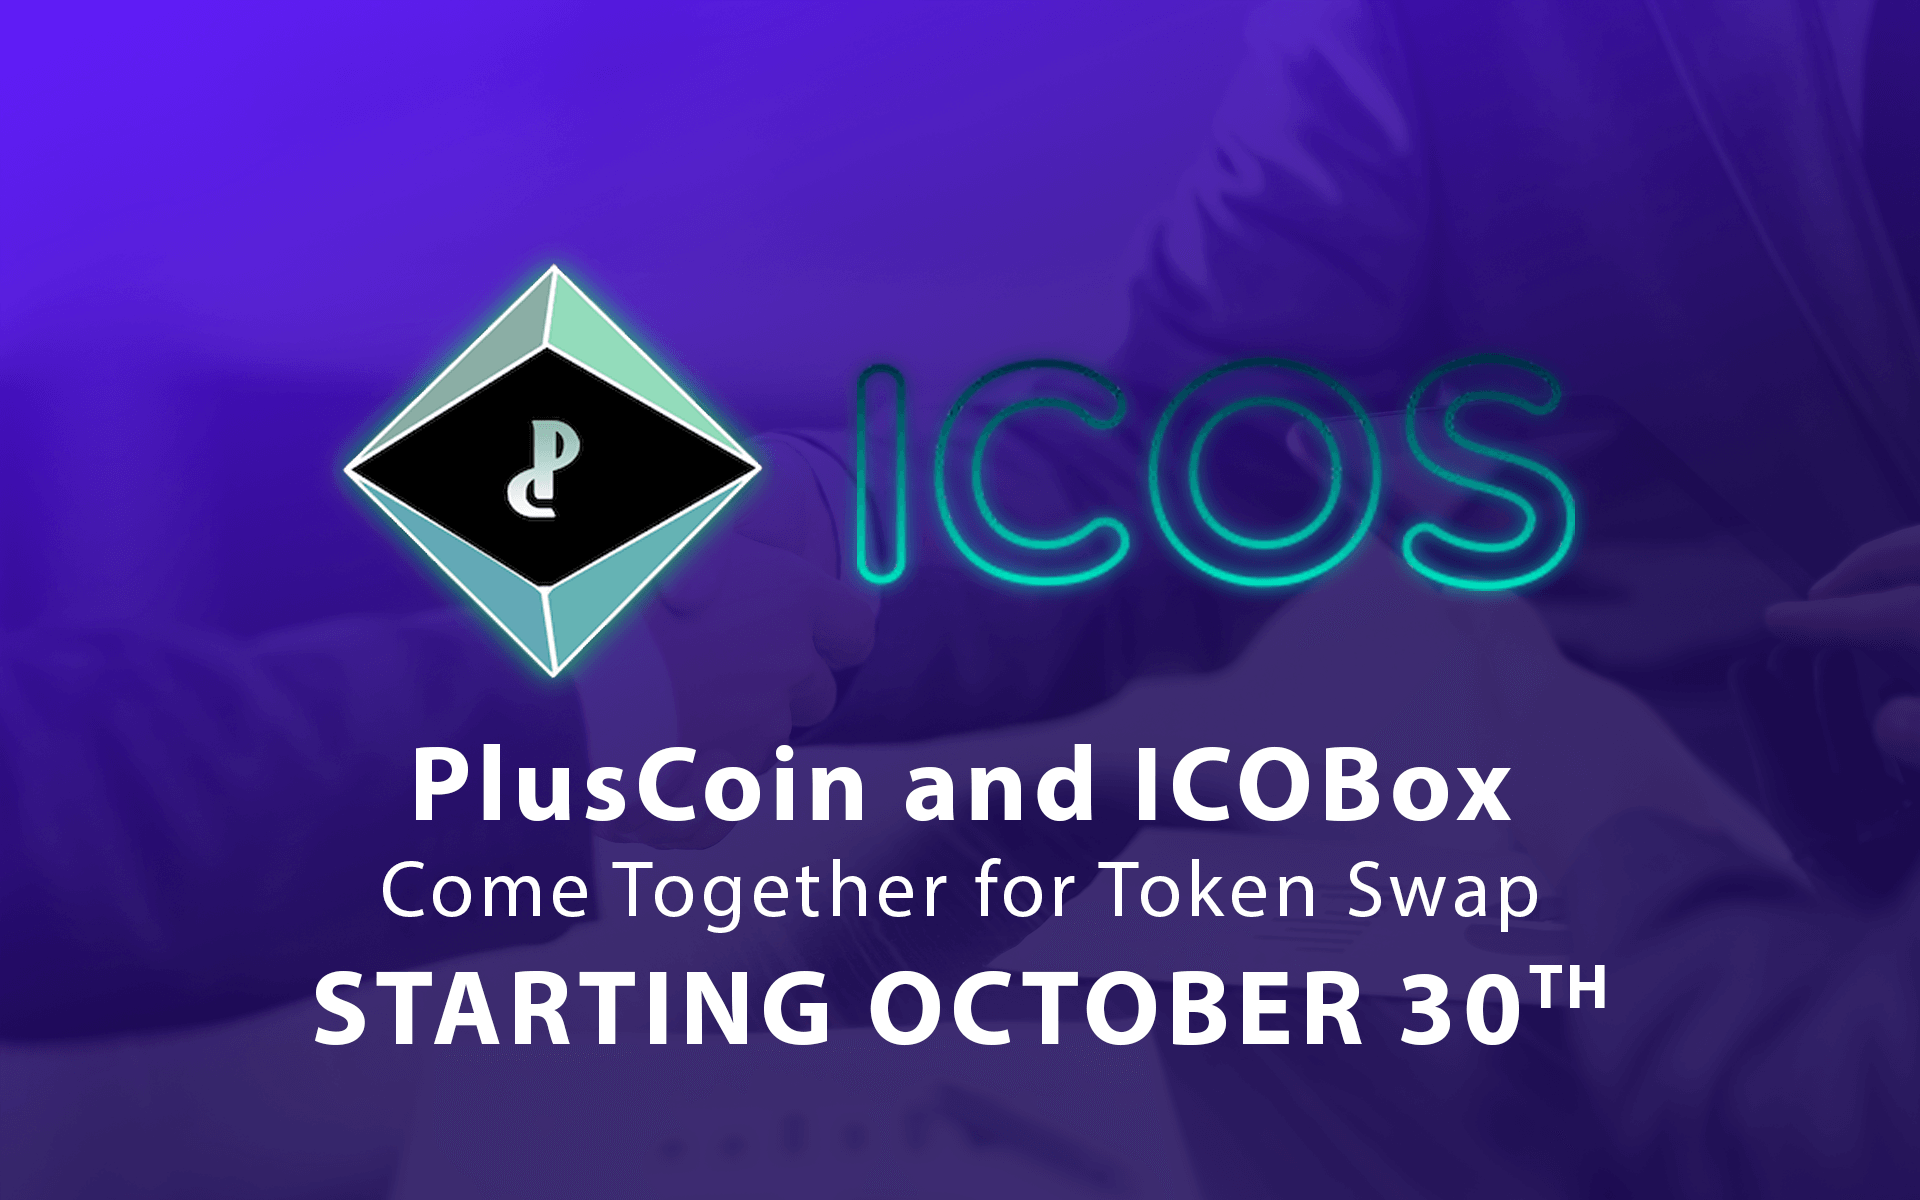 pluscoin, icobox